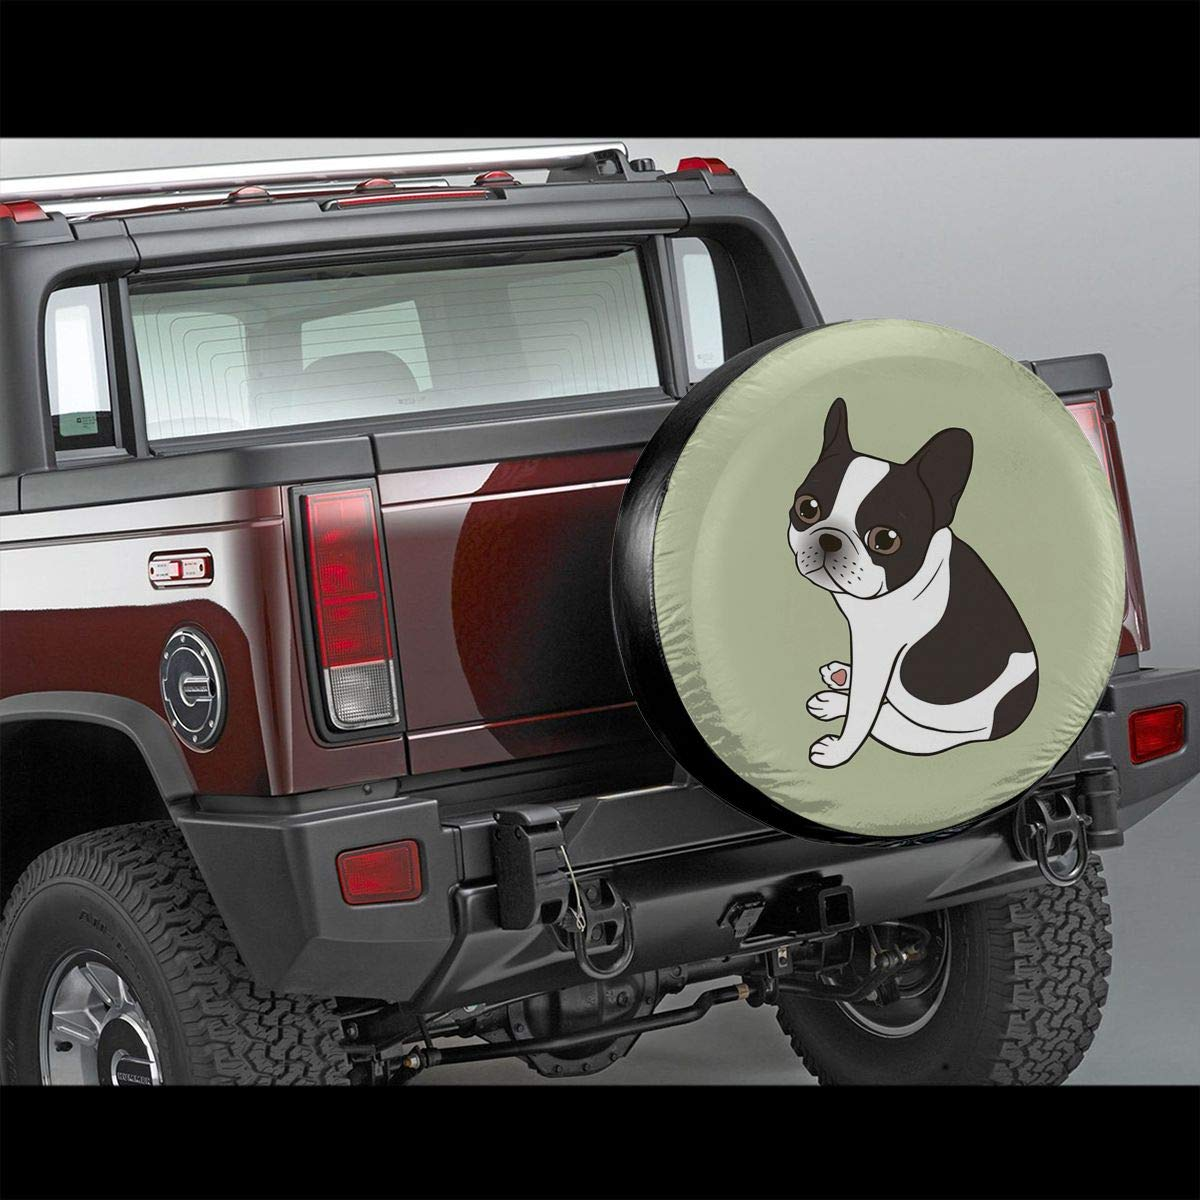 Wohnmobil Durchmesser 27,8-73,7 cm Jeep Anh/änger Say Hello To The Cute Double Pied French Bulldog Universal Reserveradabdeckung passend f/ür LKW Wohnmobil SUV Anh/änger Zubeh/ör 38,1 cm